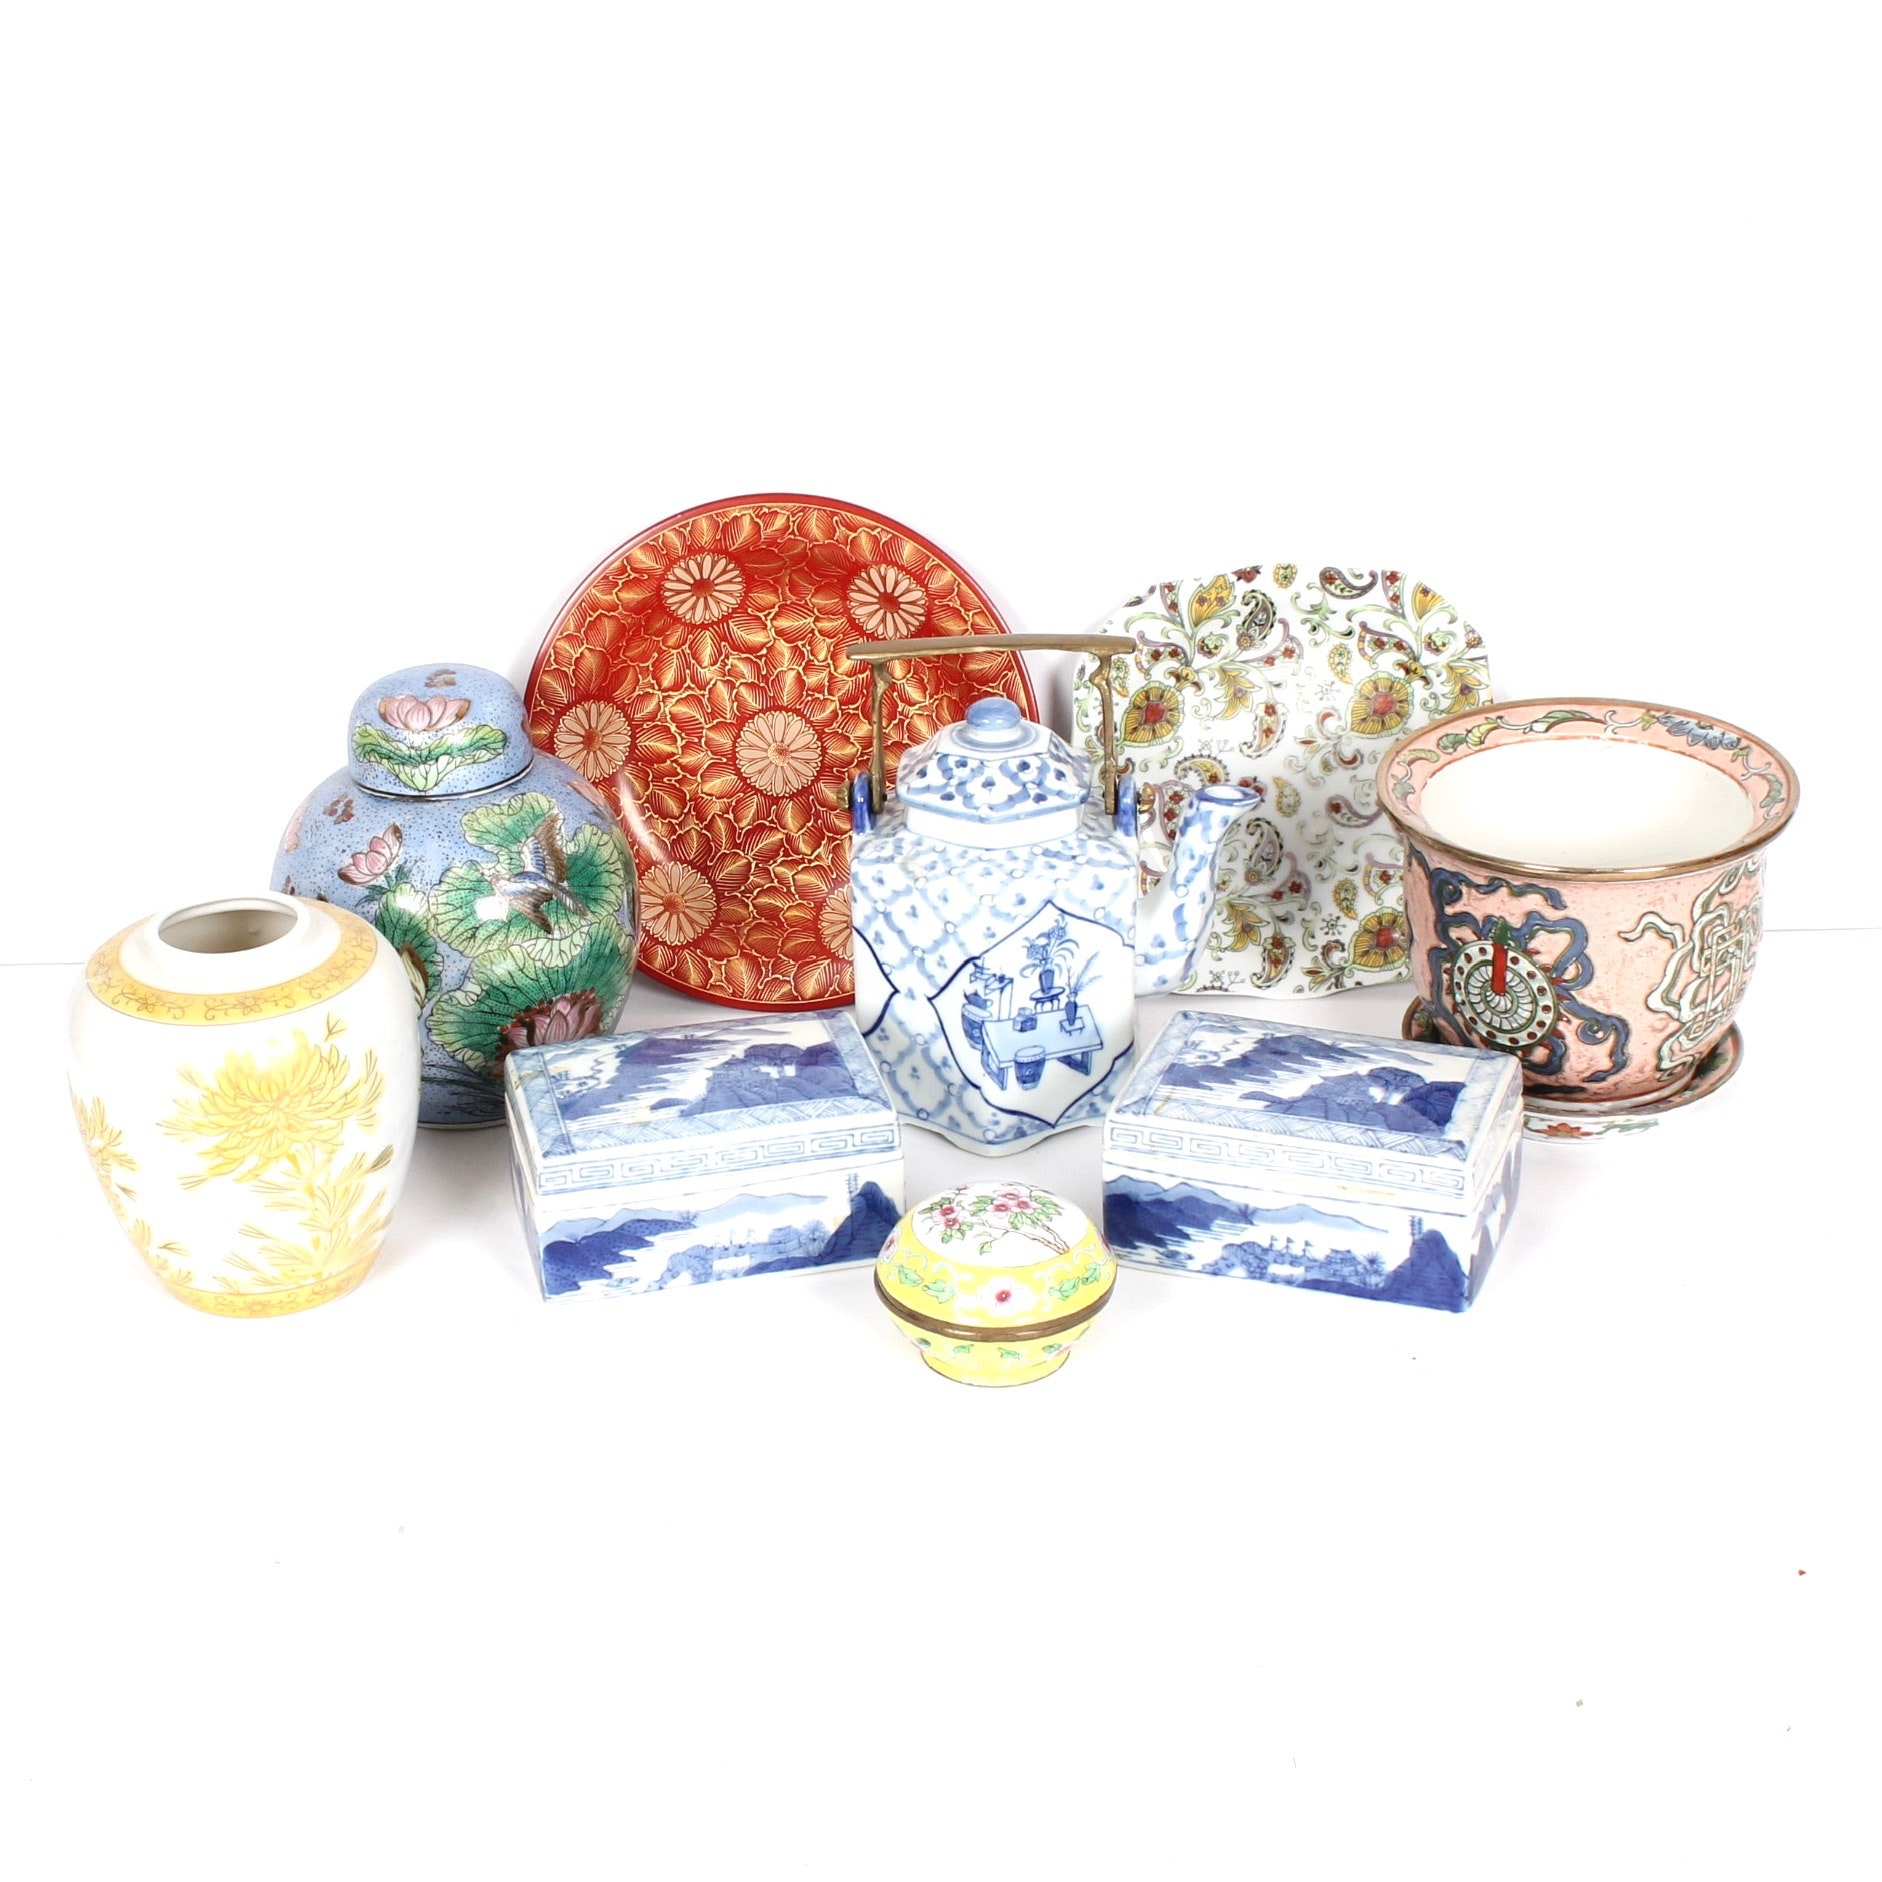 Vintage Chinoiserie Ceramics and Decorative Accessories